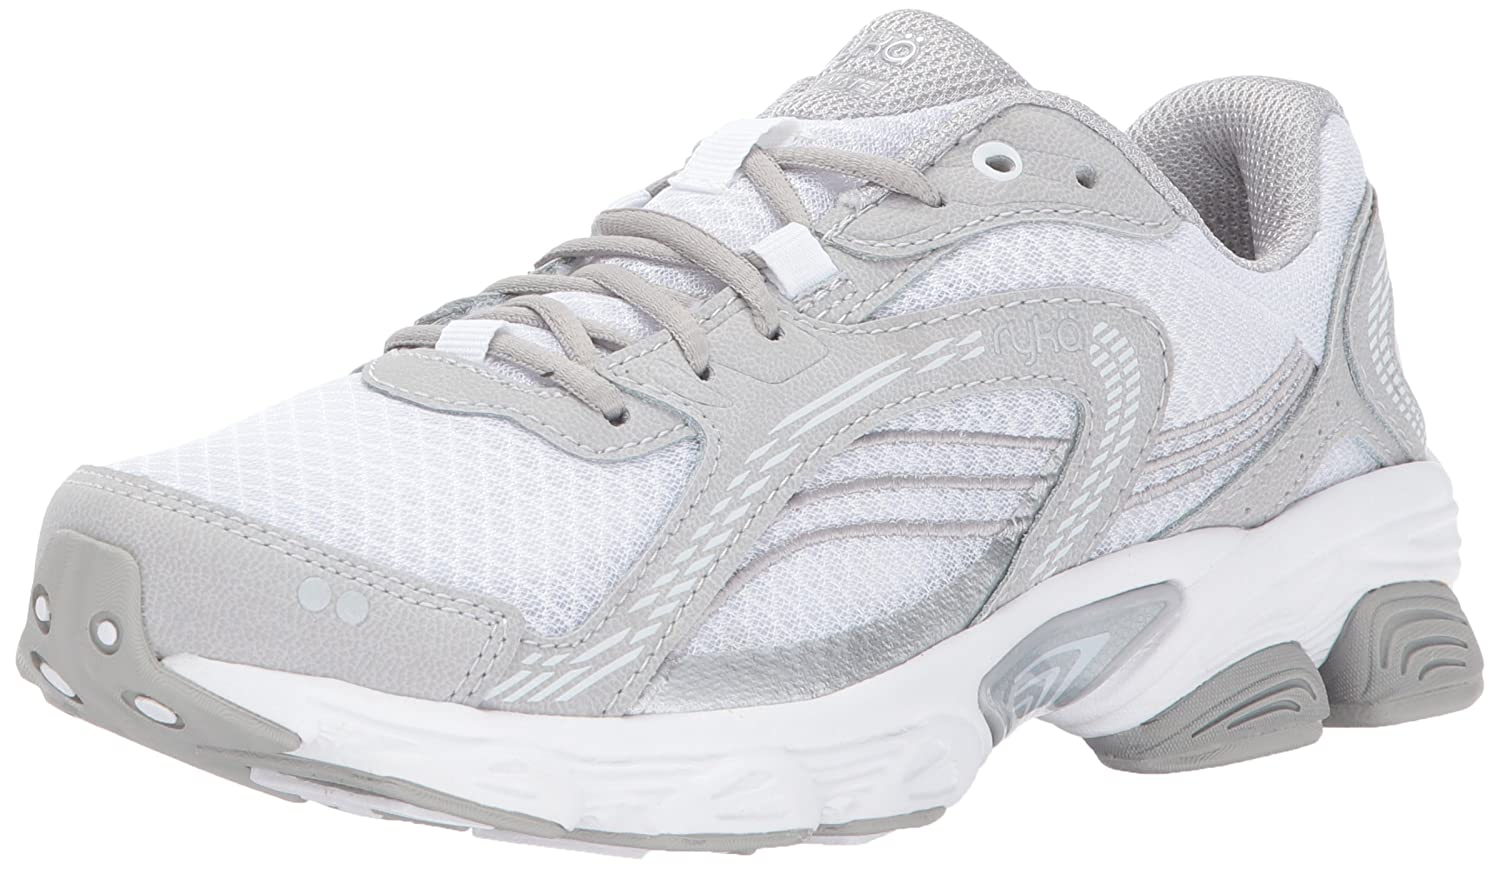 Ryka Women's Ultimate Running Shoe B01NC2JEE3 5.5 M US|White/Grey